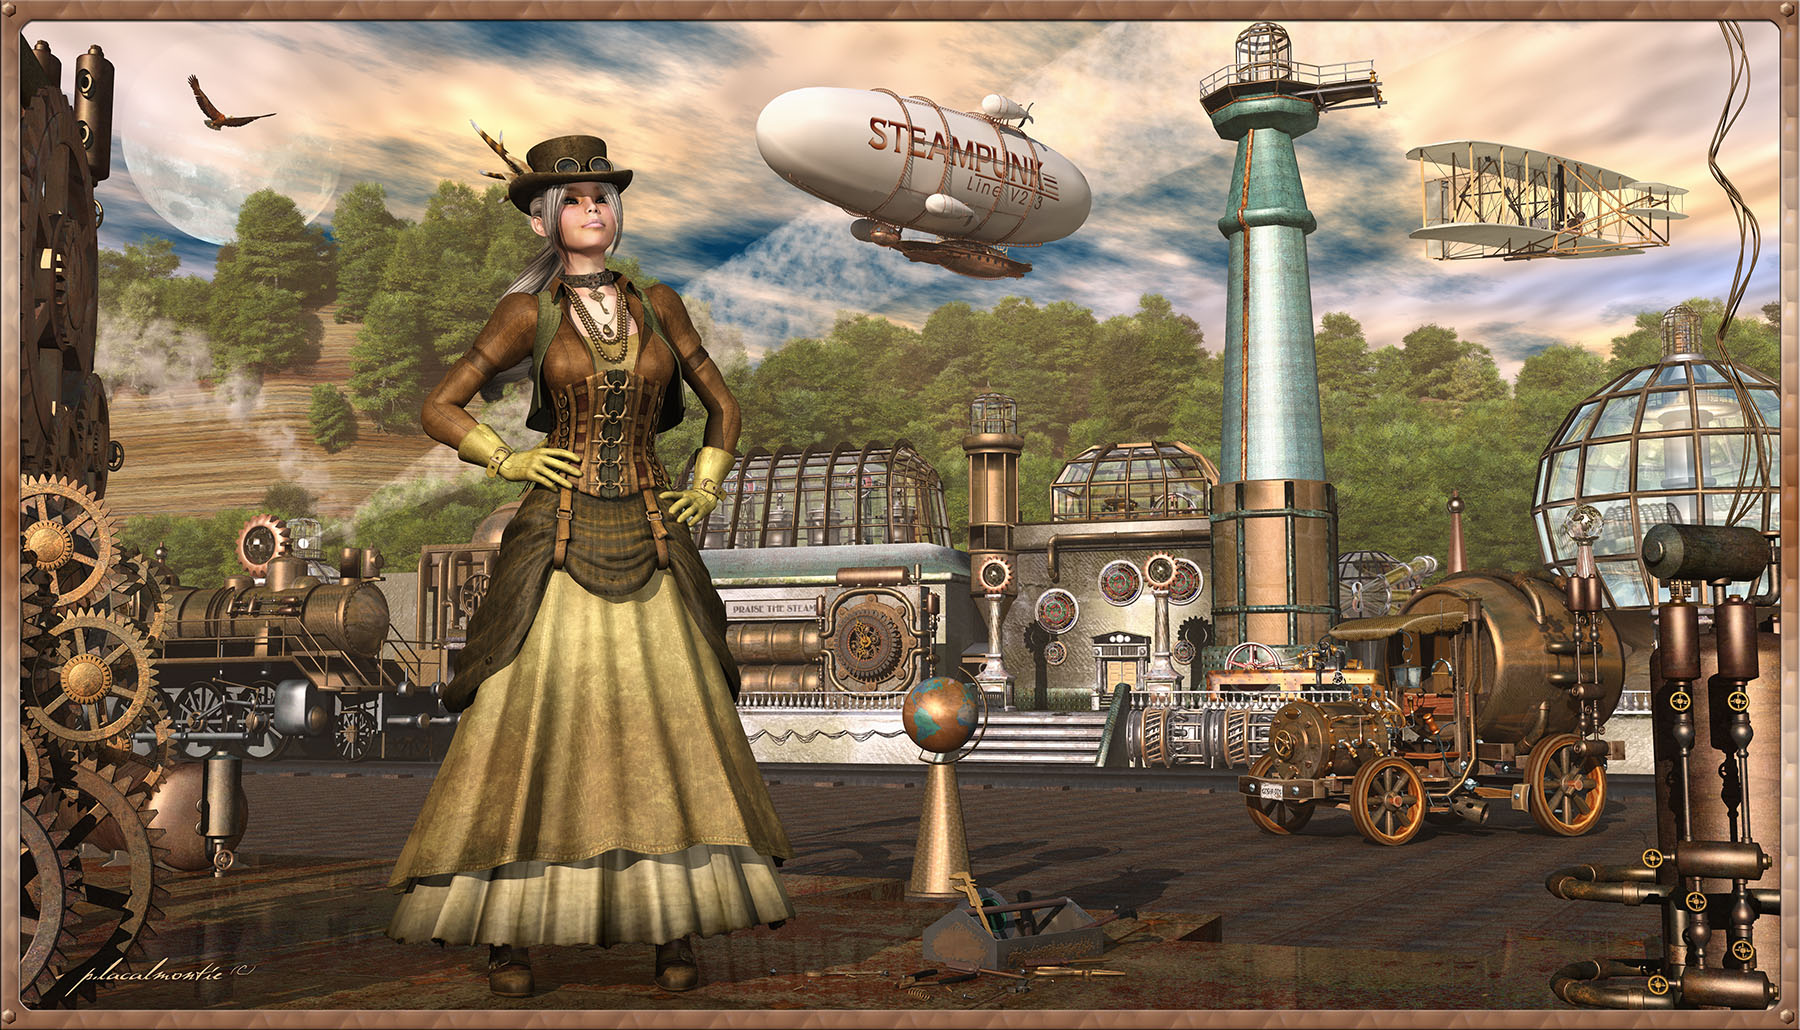 a report on my experiences as a member of the steampunk